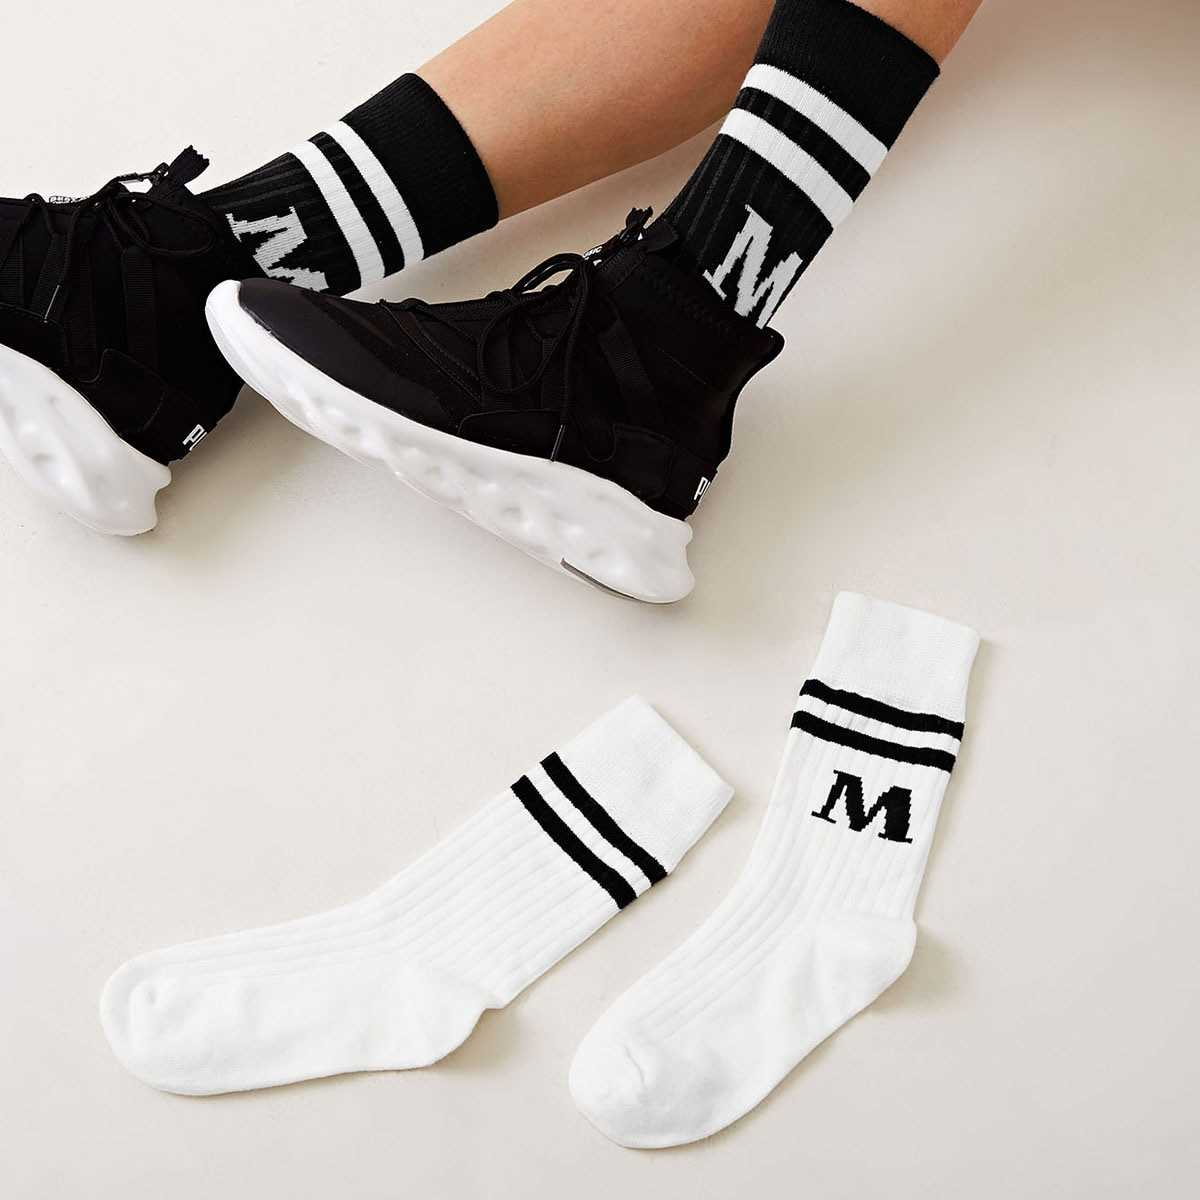 Letter Pattern Socks 2pairs in Black and White by ROMWE on GOOFASH